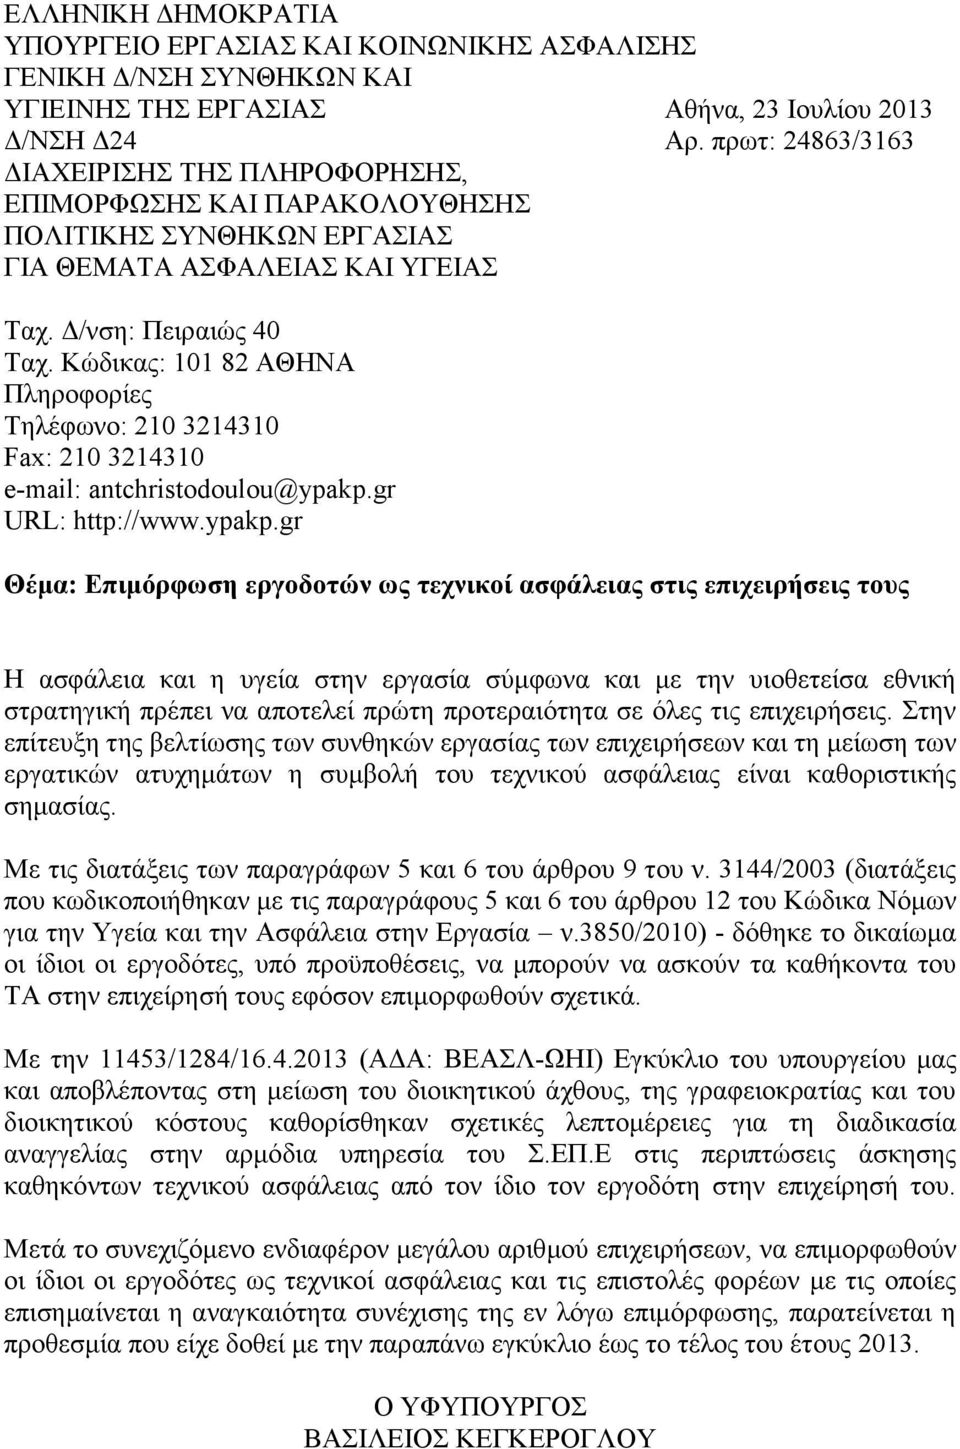 Kώδικας: 101 82 AΘHNA Πληροφορίες Tηλέφωνο: 210 3214310 Fax: 210 3214310 e-mail: antchristodoulou@ypakp.